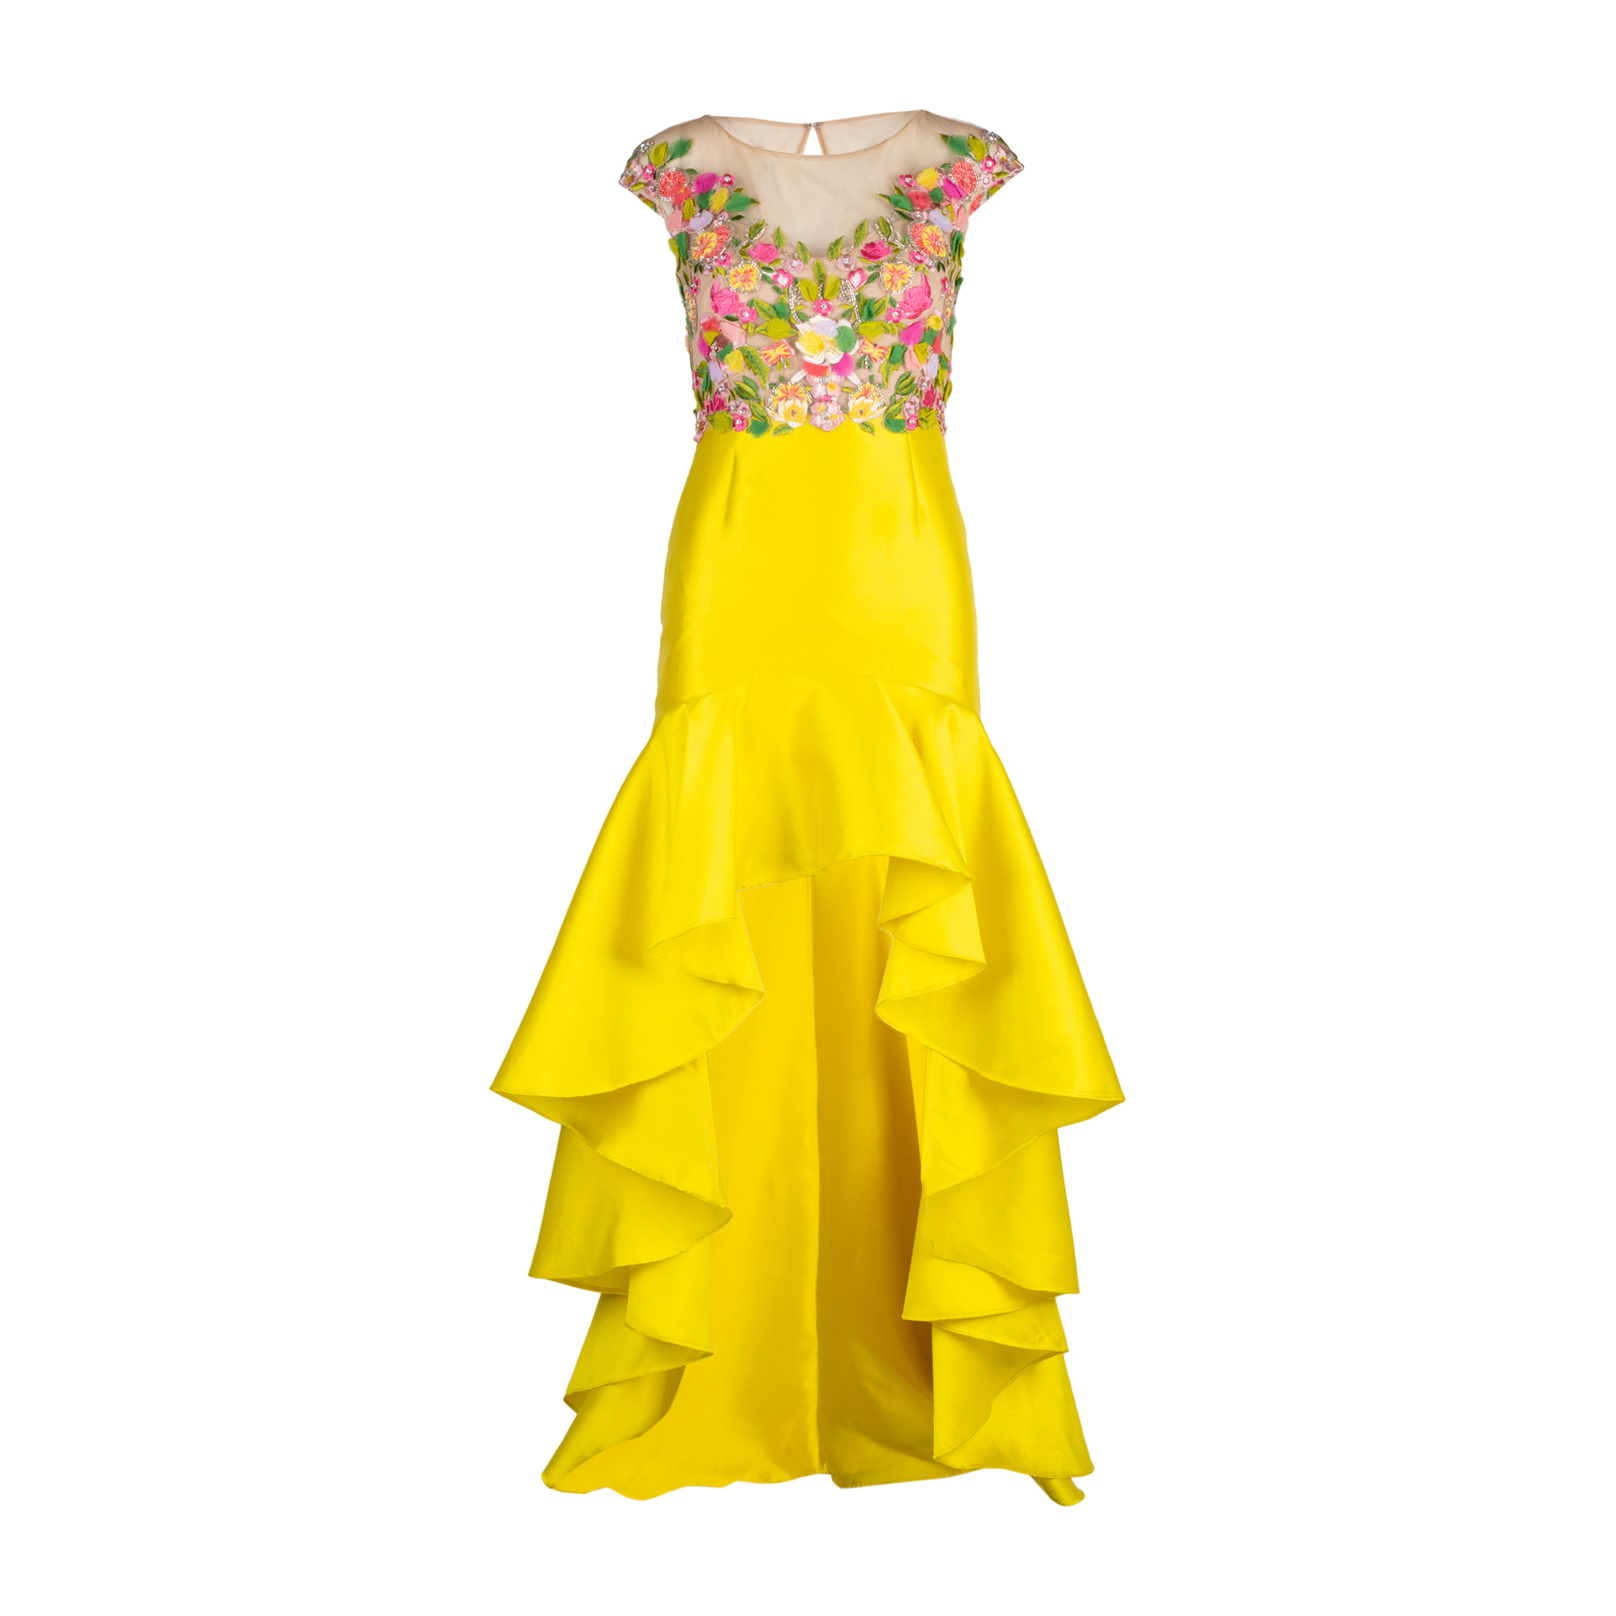 cf6de8ce44d Authentic Second Hand Marchesa Notte Embroidered Mikado High-Low Dress  (PSS-515-00249) - THE FIFTH COLLECTION